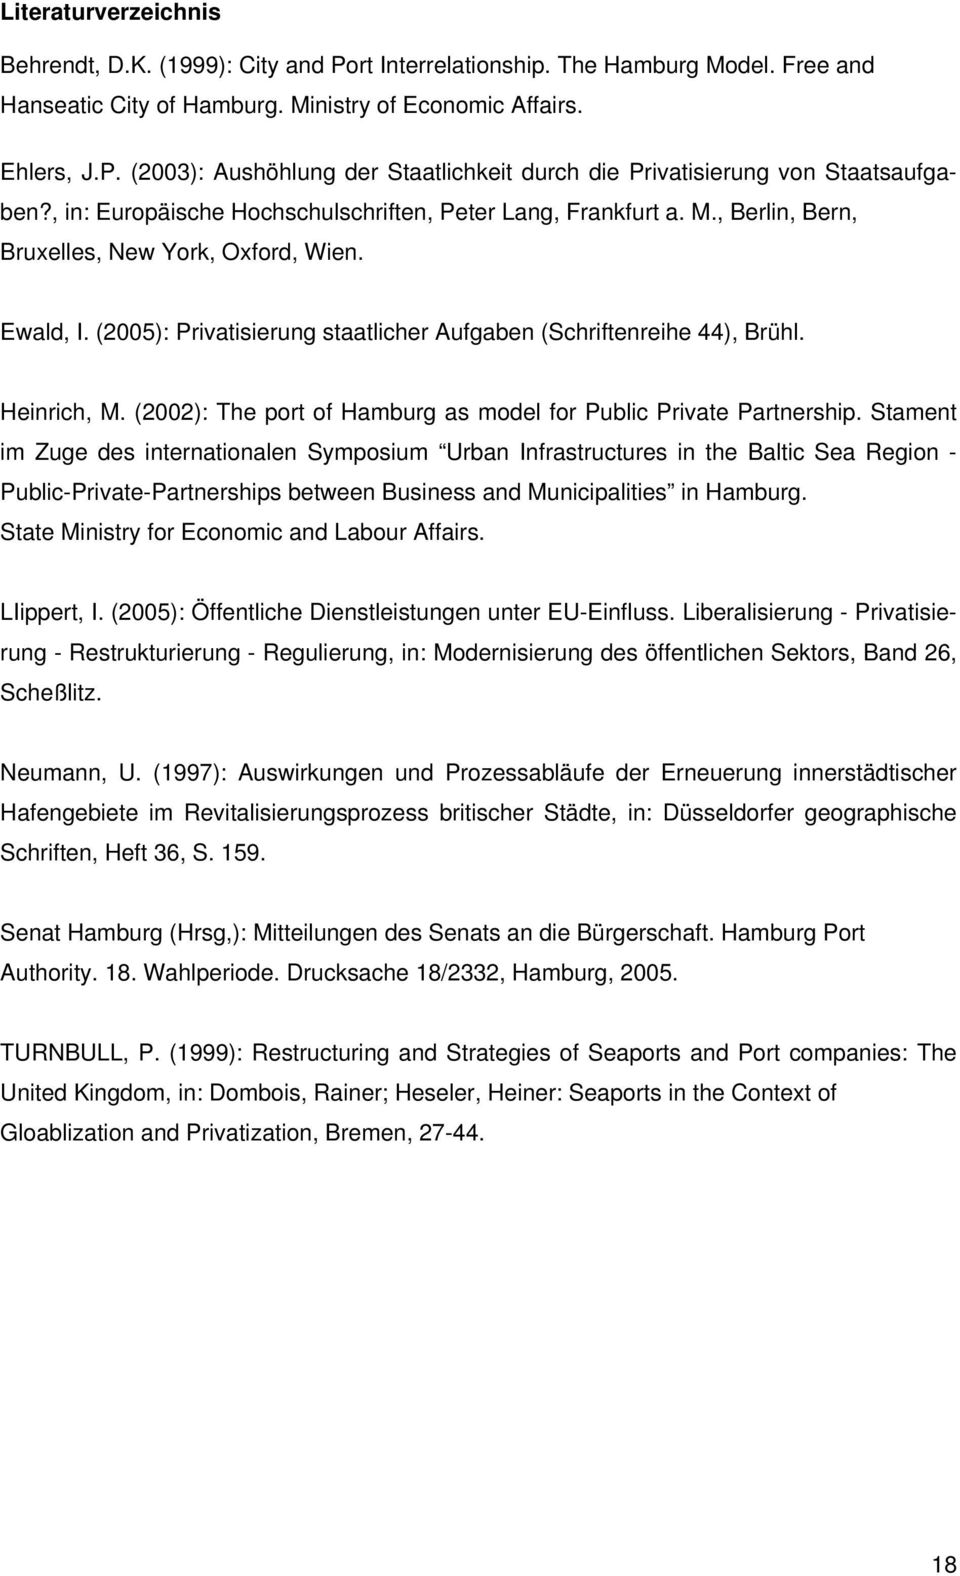 Heinrich, M. (2002): The port of Hamburg as model for Public Private Partnership.